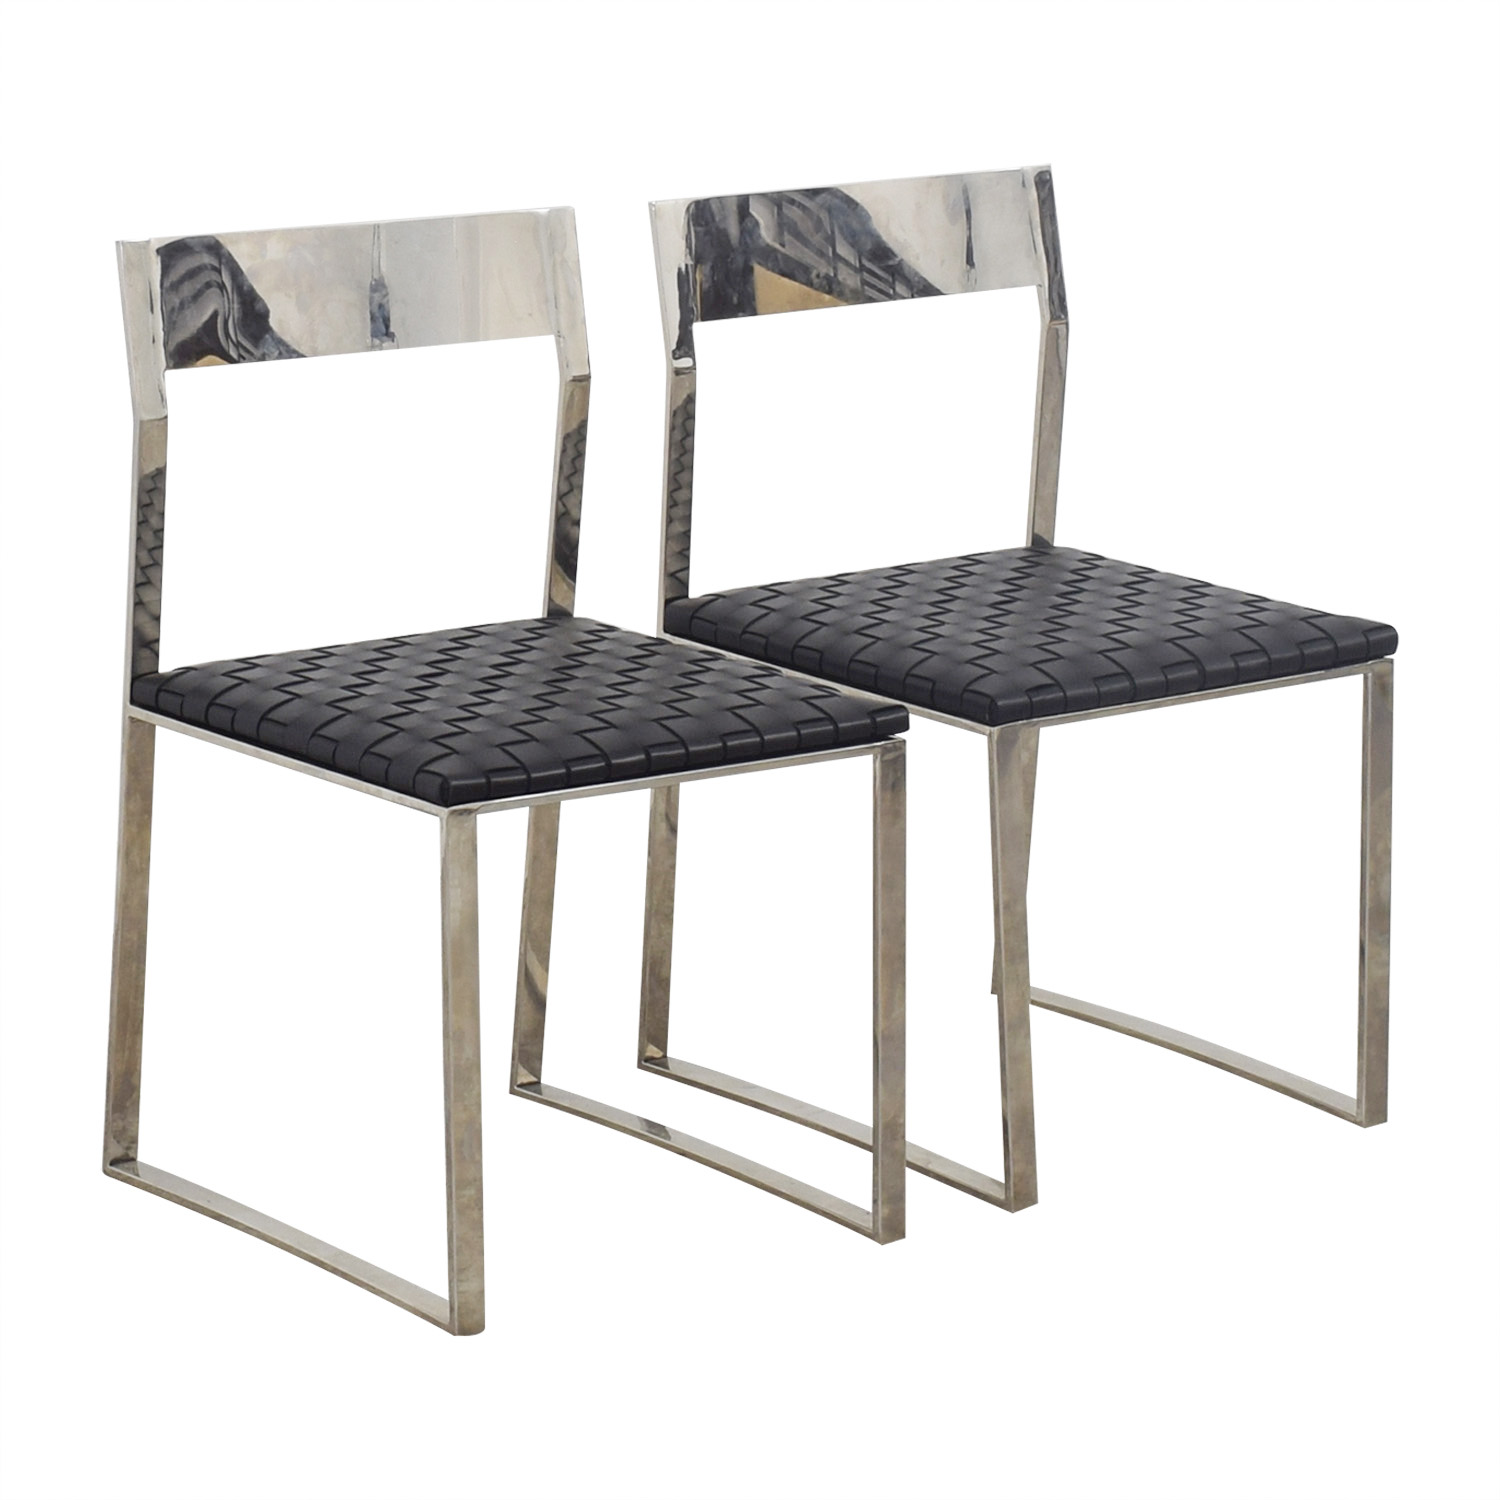 Nuevo Nuevo Camille Black Leather and Mirrored Steel Dining Chairs